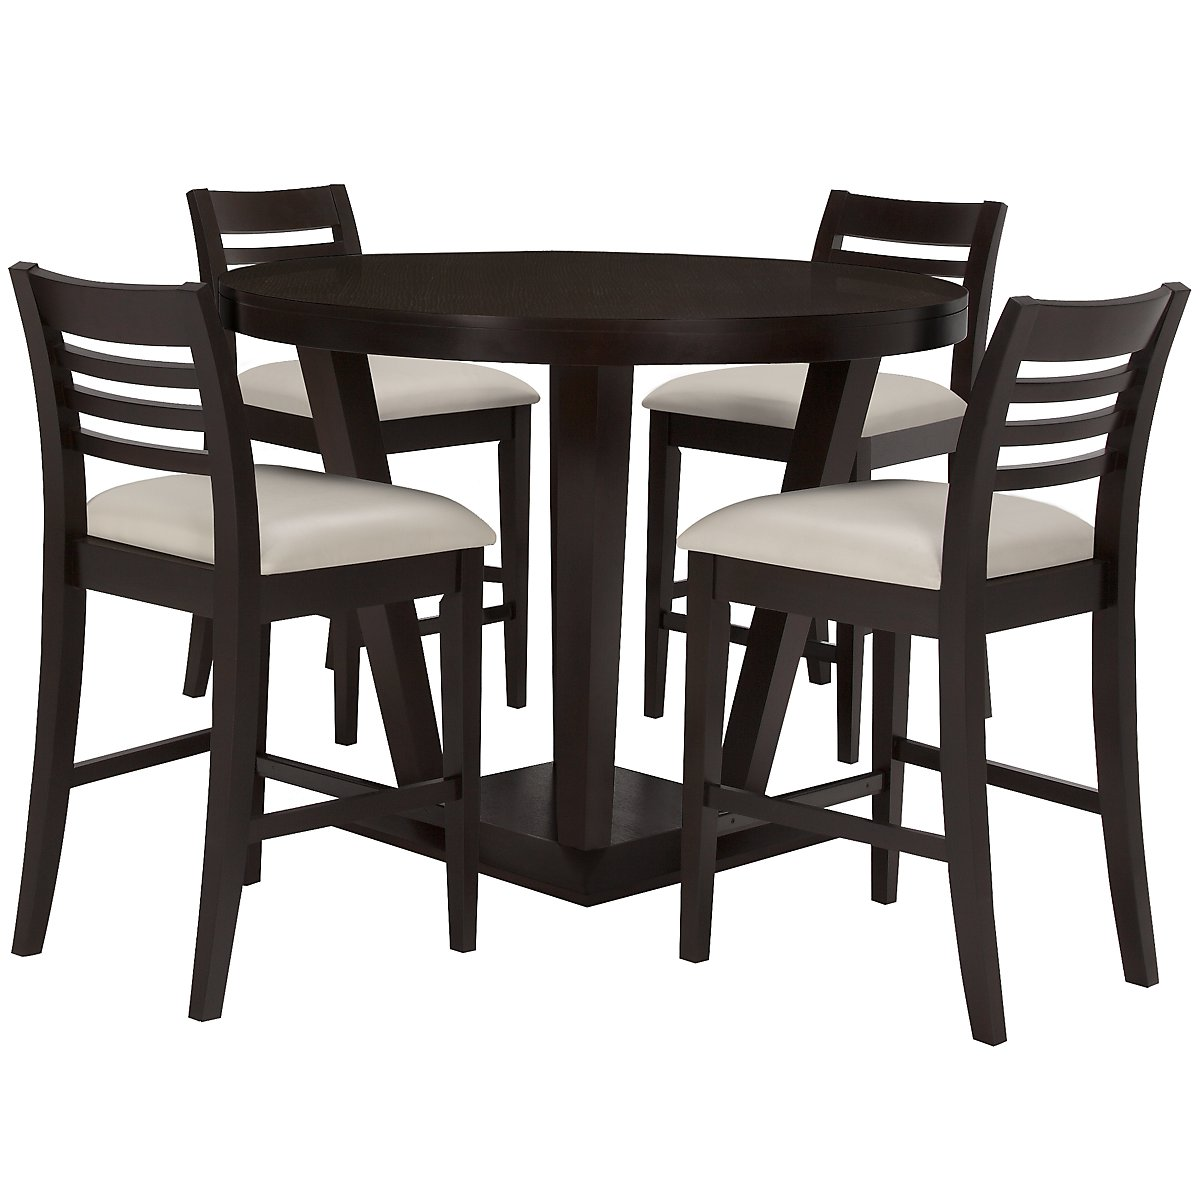 Encore2 Dark Tone High Table & 4 Barstools